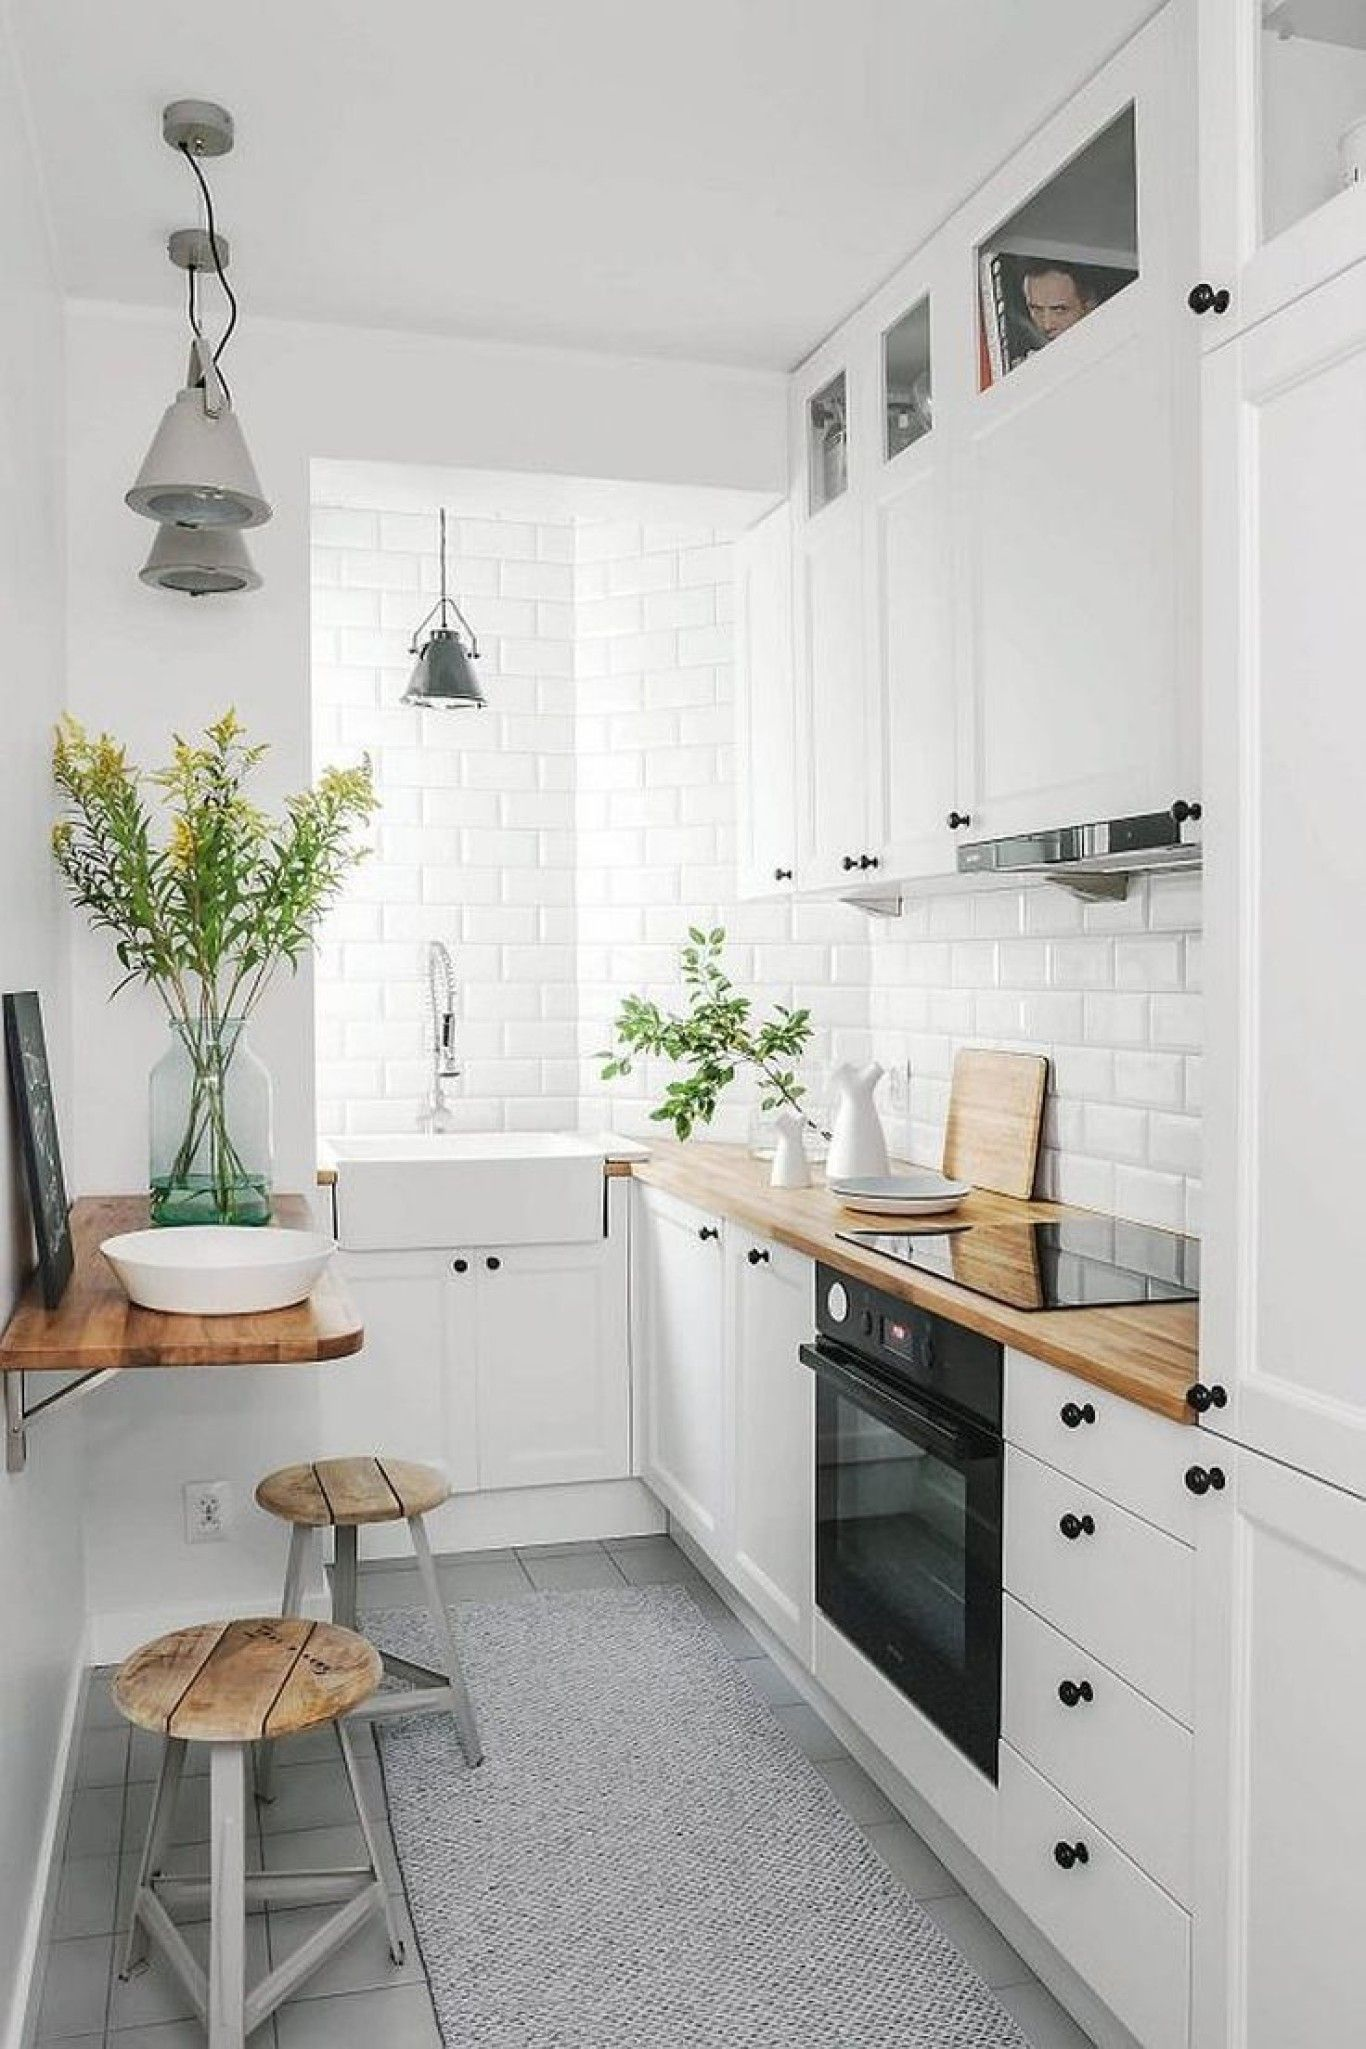 6 Stylish Small Kitchen Ideas For A Dreamy Spring